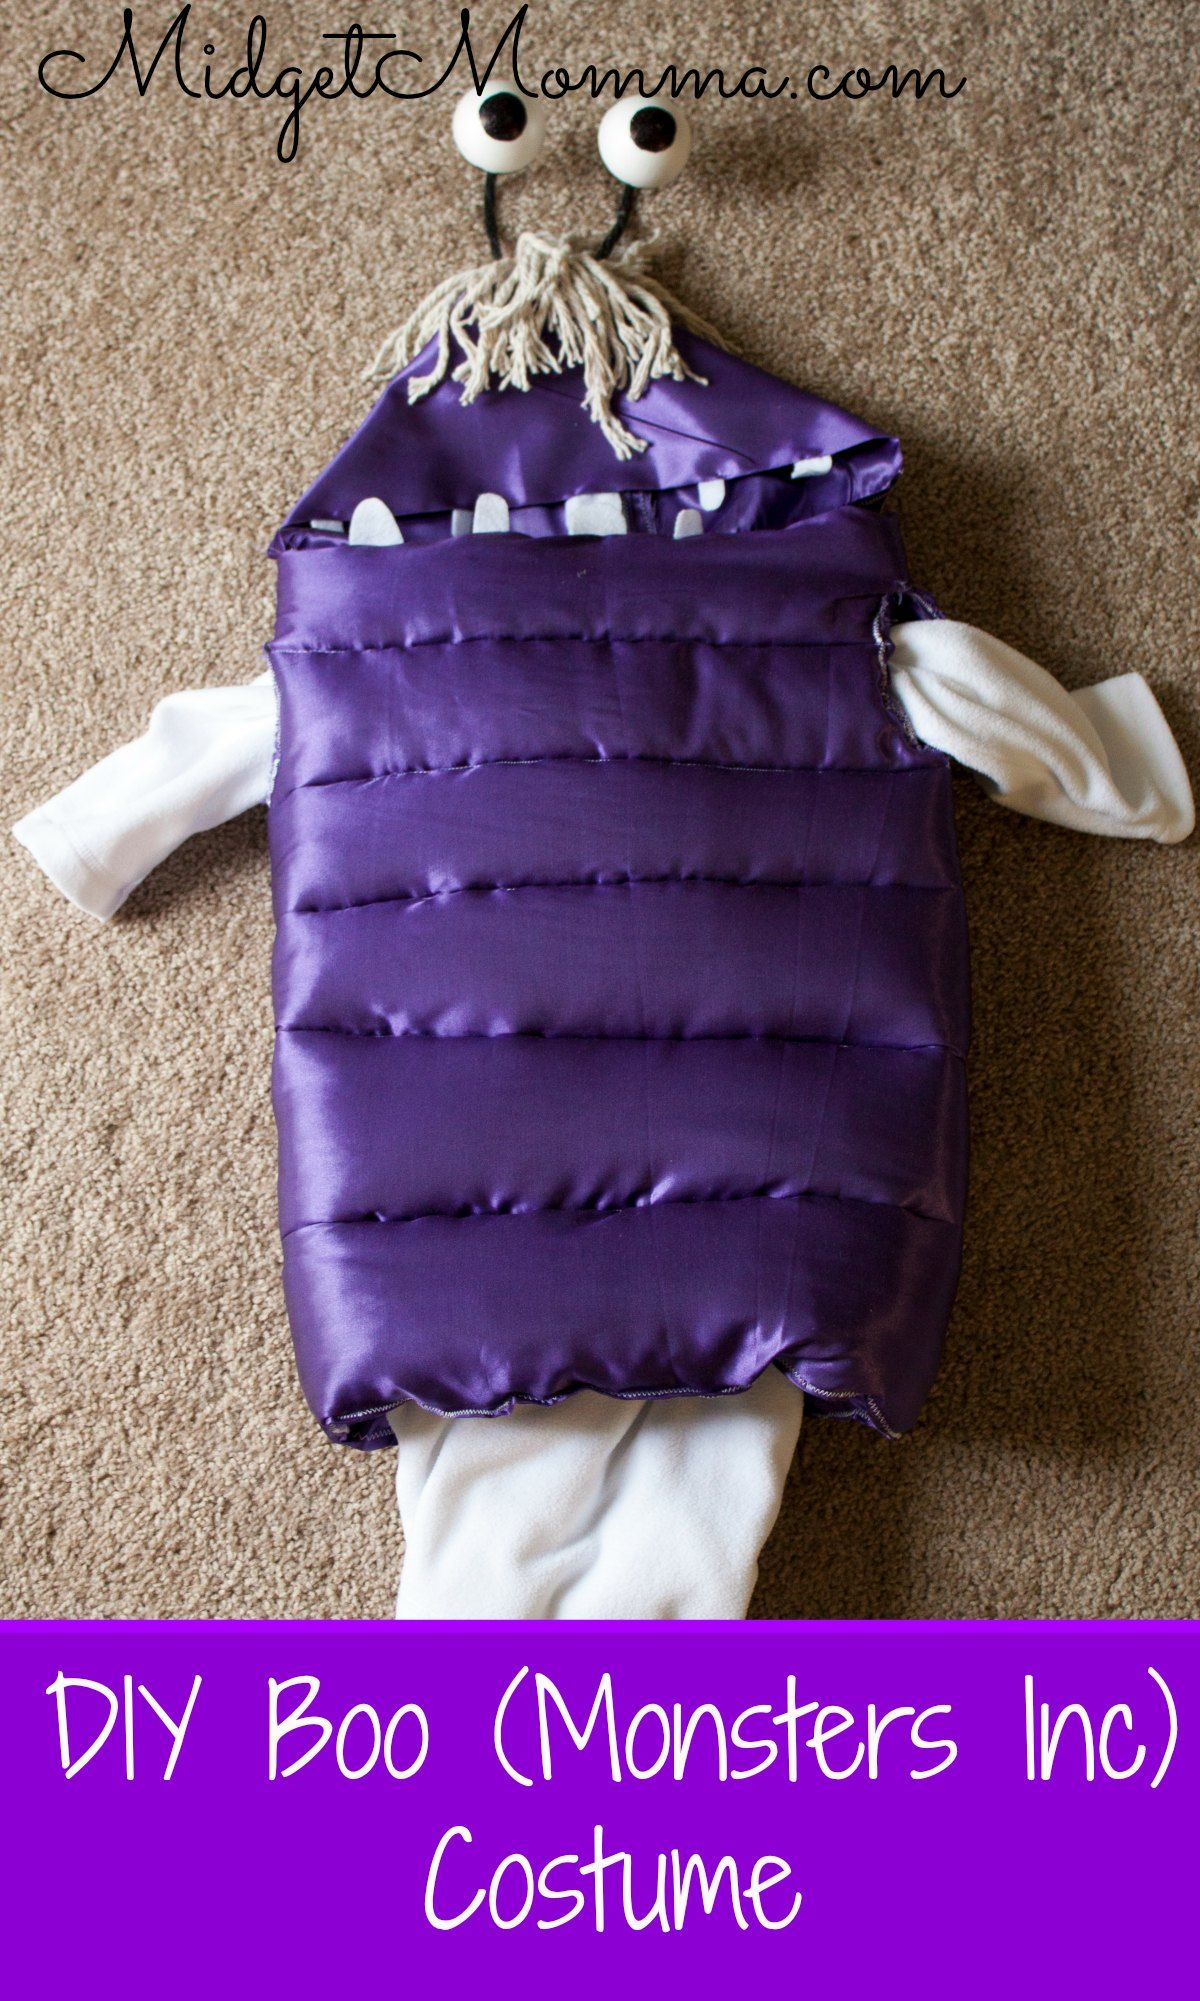 Diy Boo From Monster Inc Costume Monster Inc Costumes Halloween Costume Monster Monsters Inc Halloween Costumes